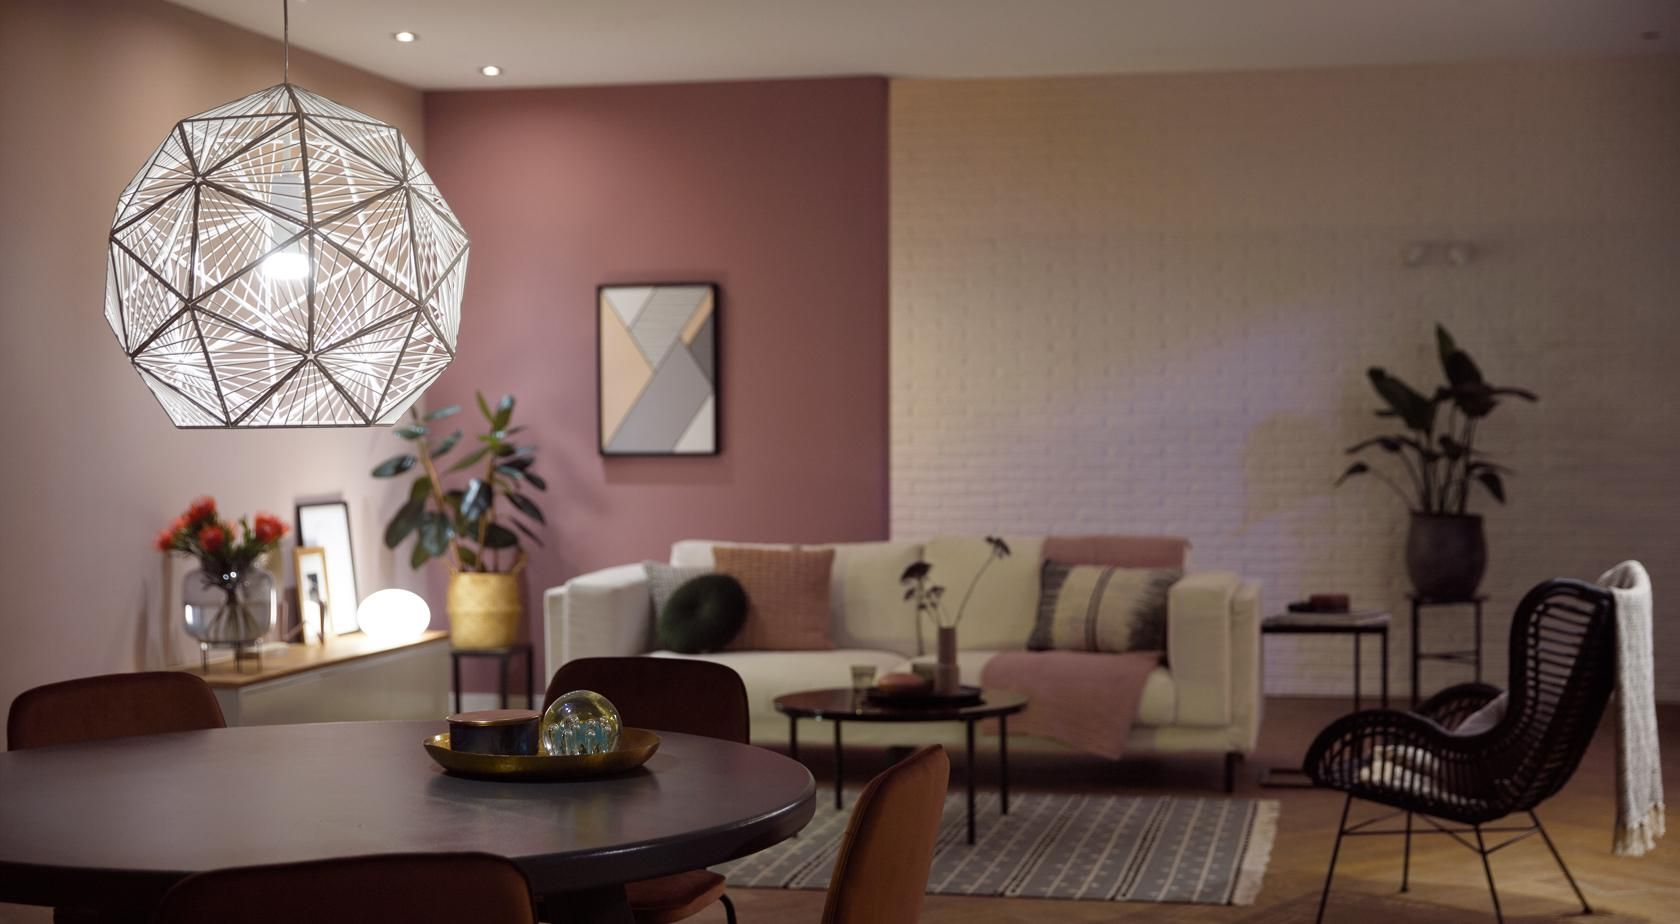 ambiance with smart light bluetooth